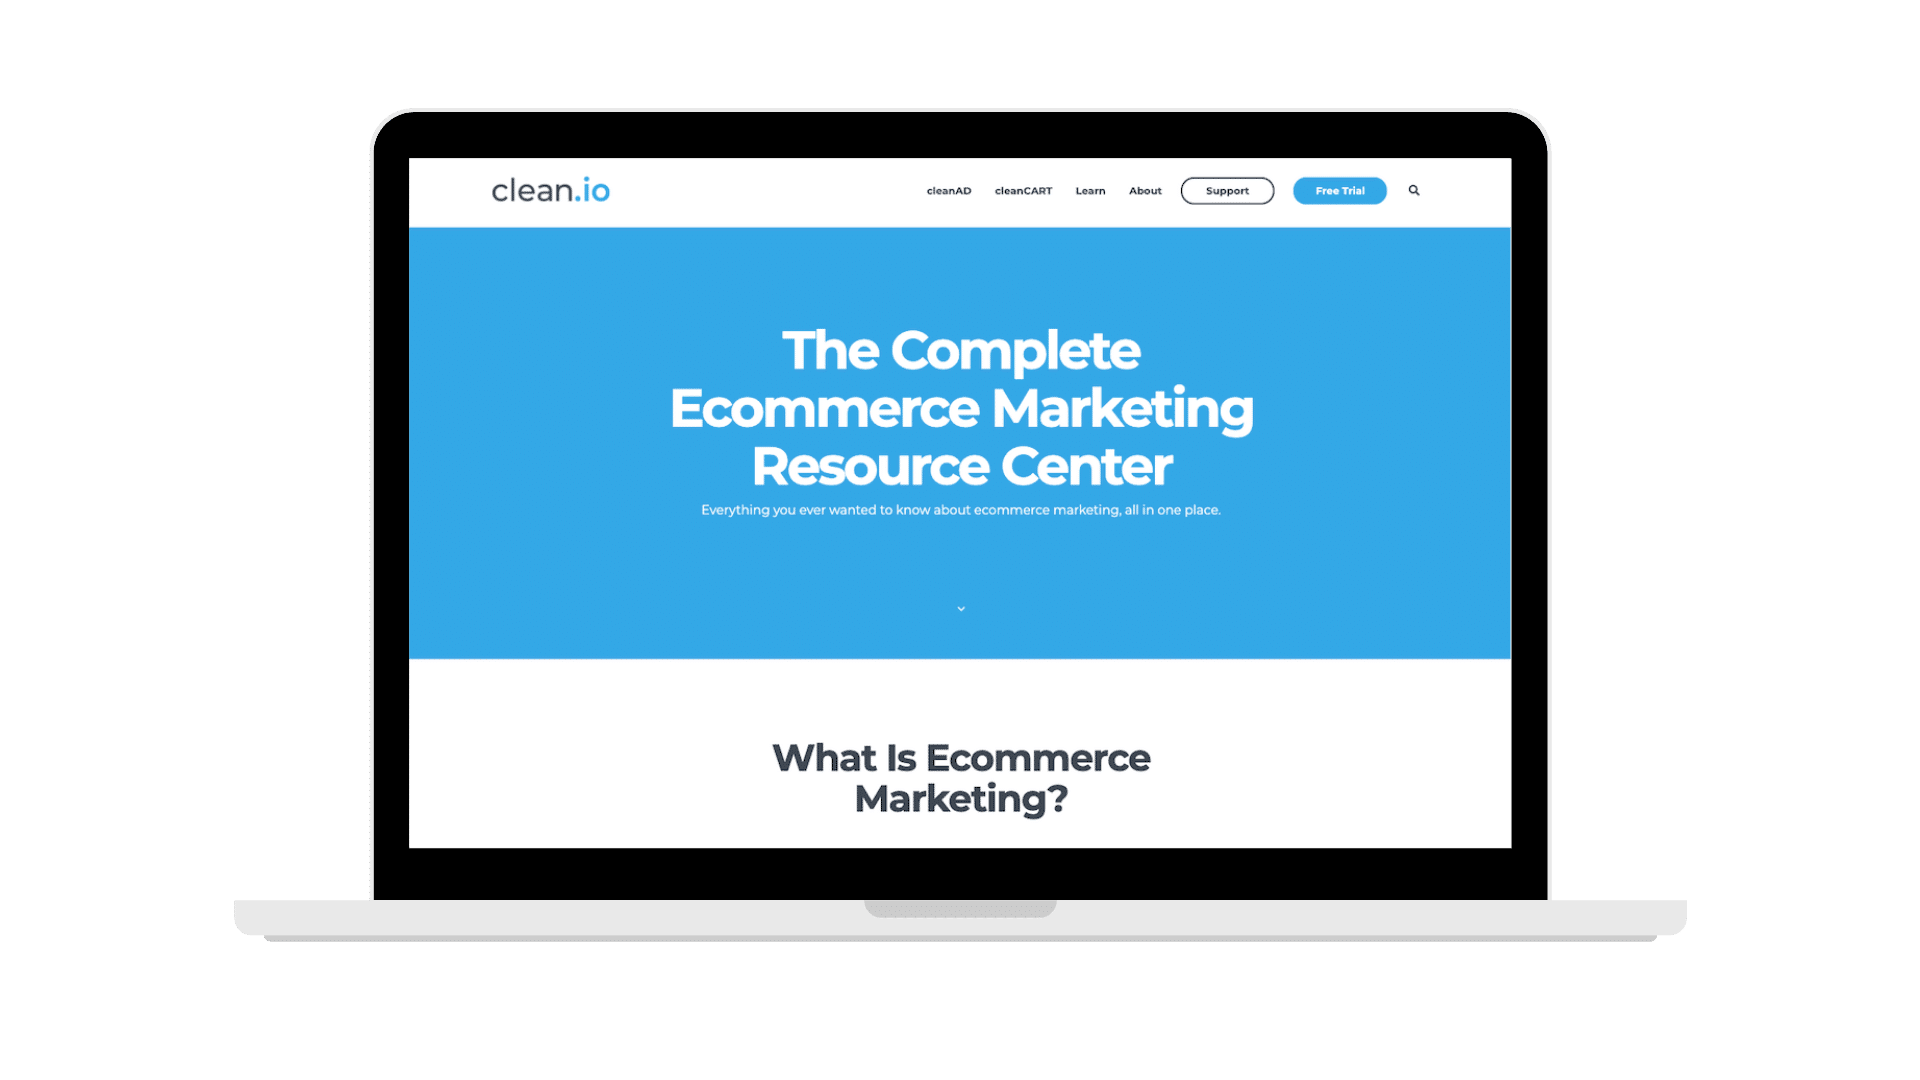 ecommerce marketing resource center